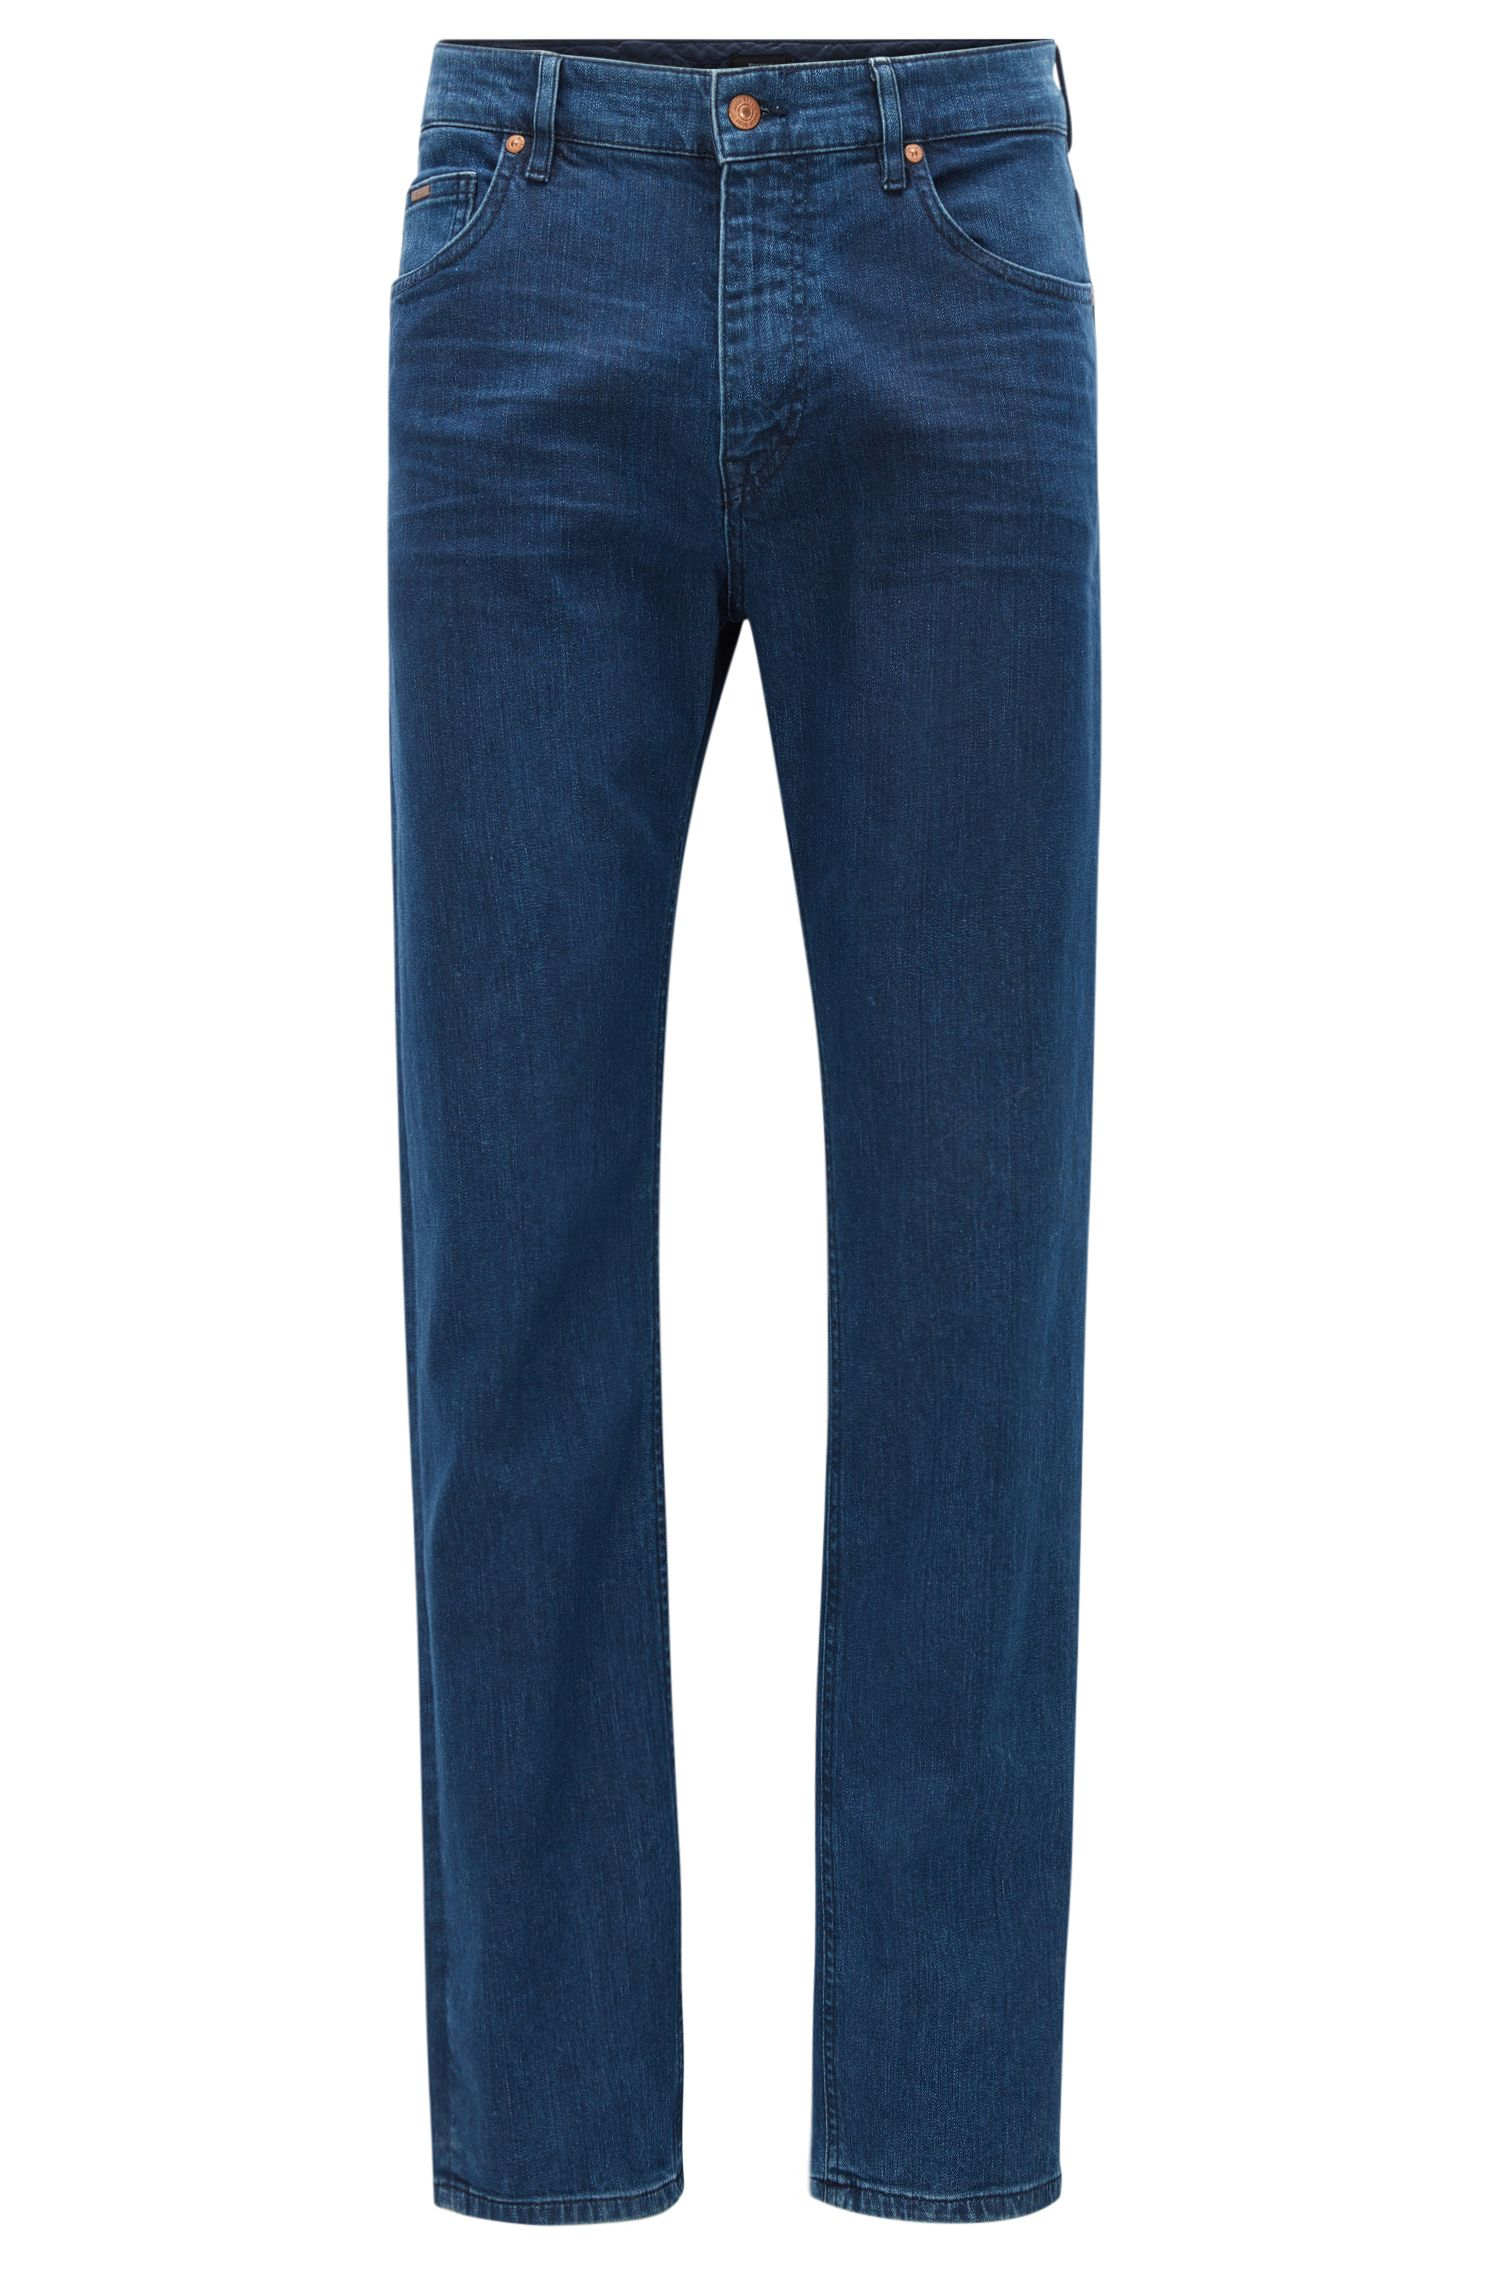 Relaxed-fit dark indigo jeans in washed stretch denim